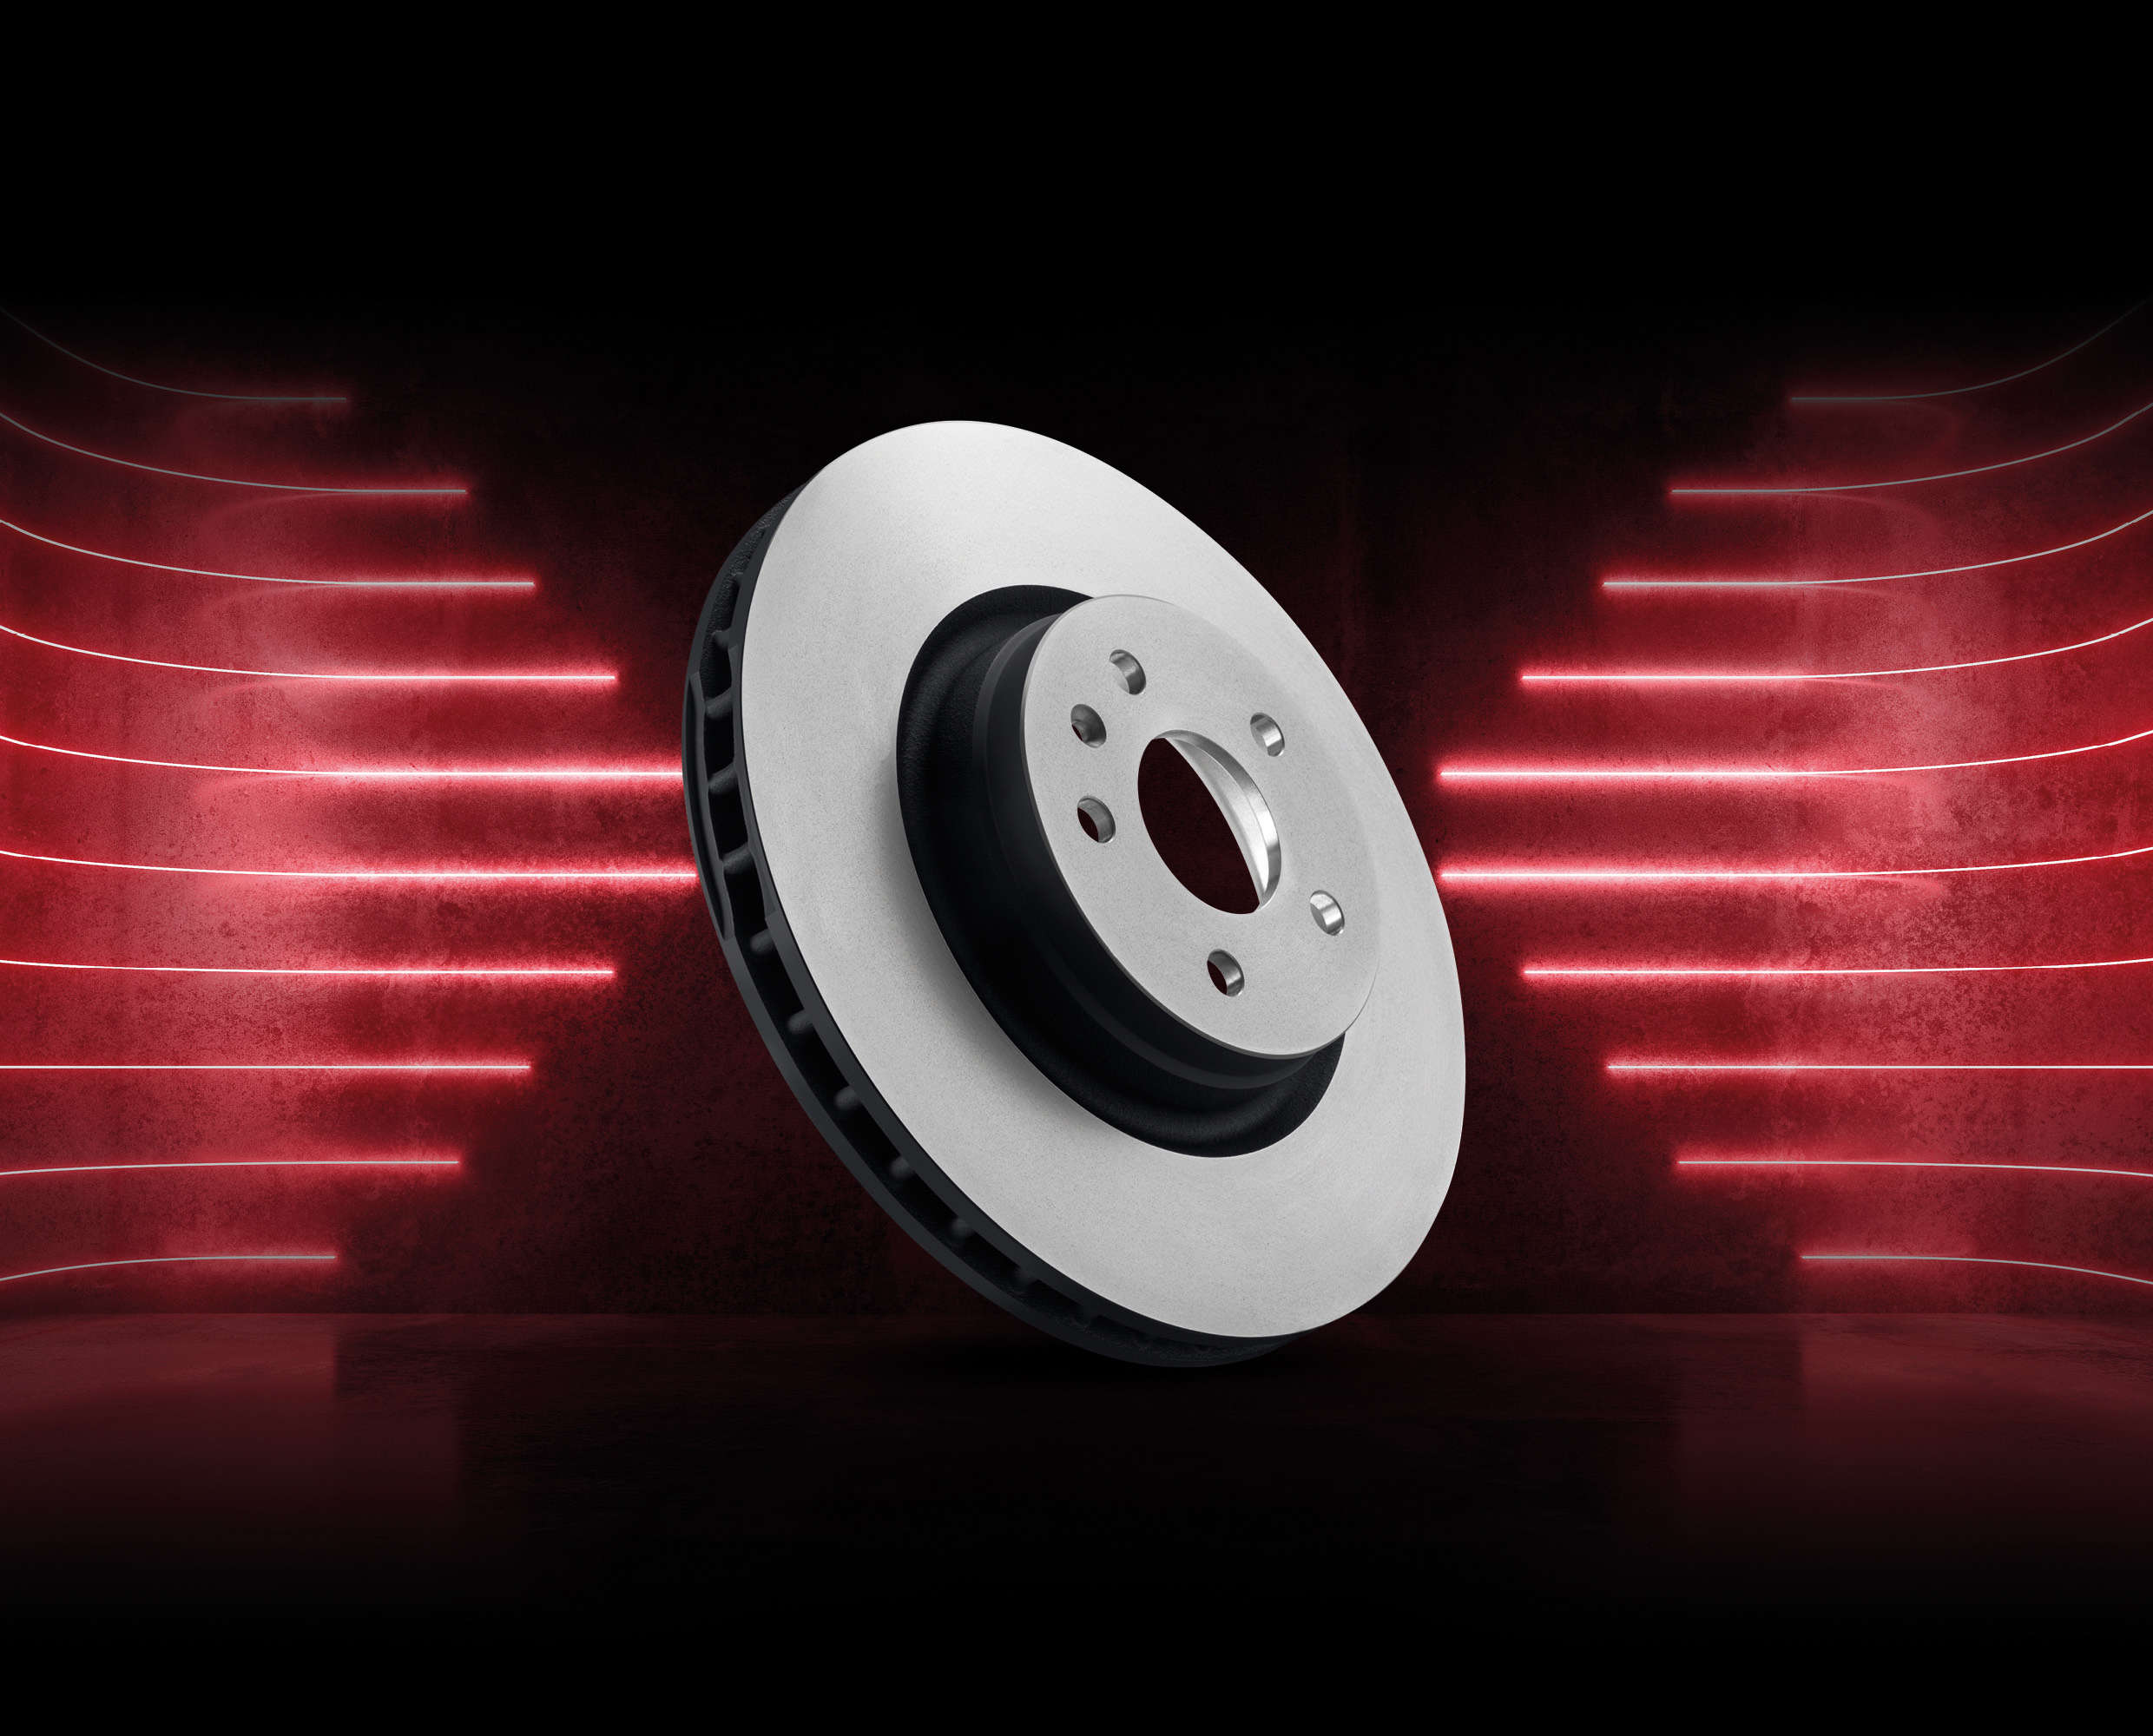 zf brake disc: ZF Aftermarket extends its brake disc product